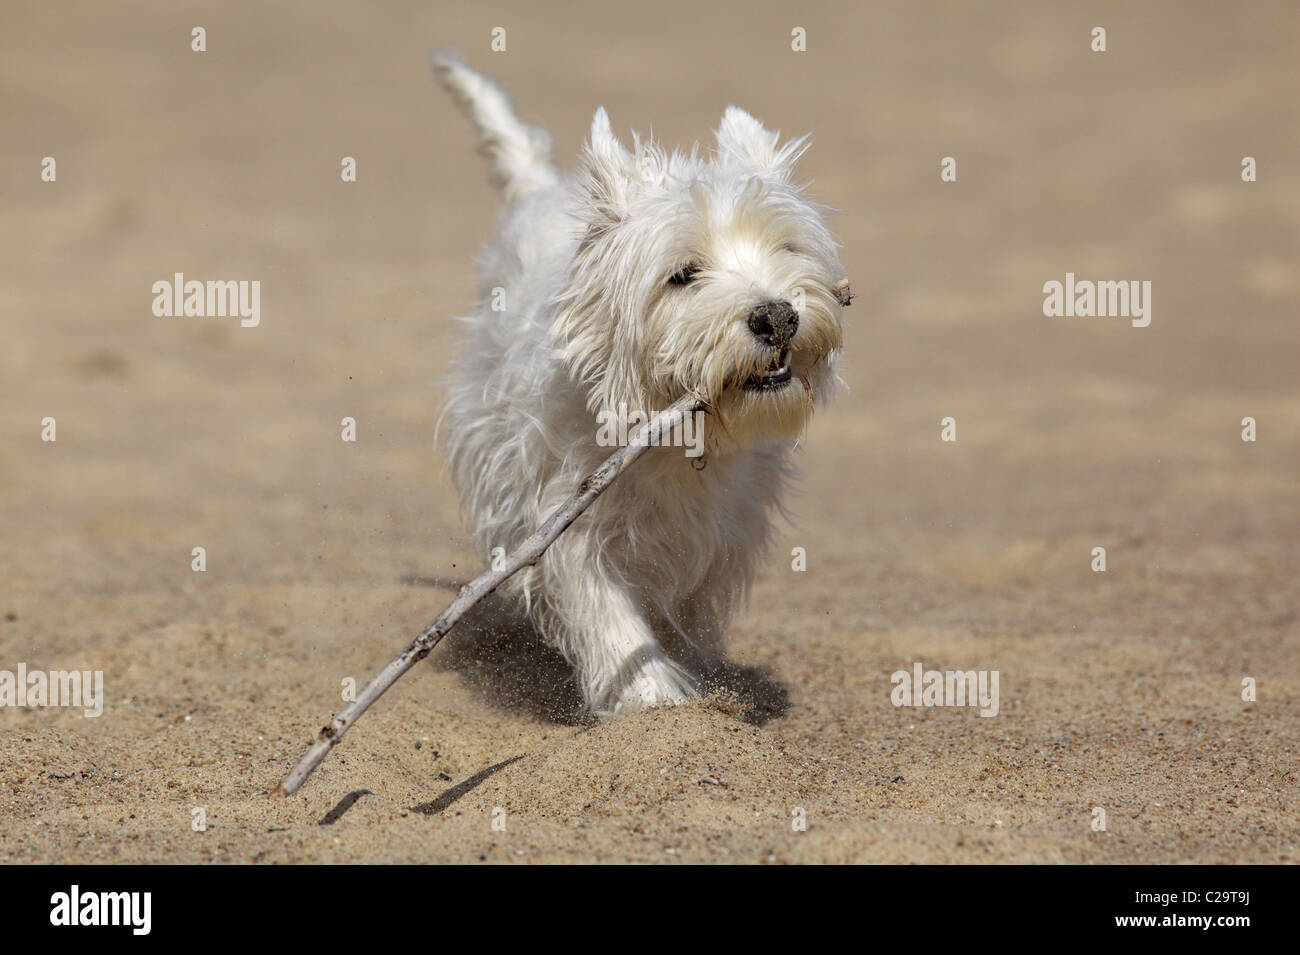 Young, white dog on the beach - Stock Image